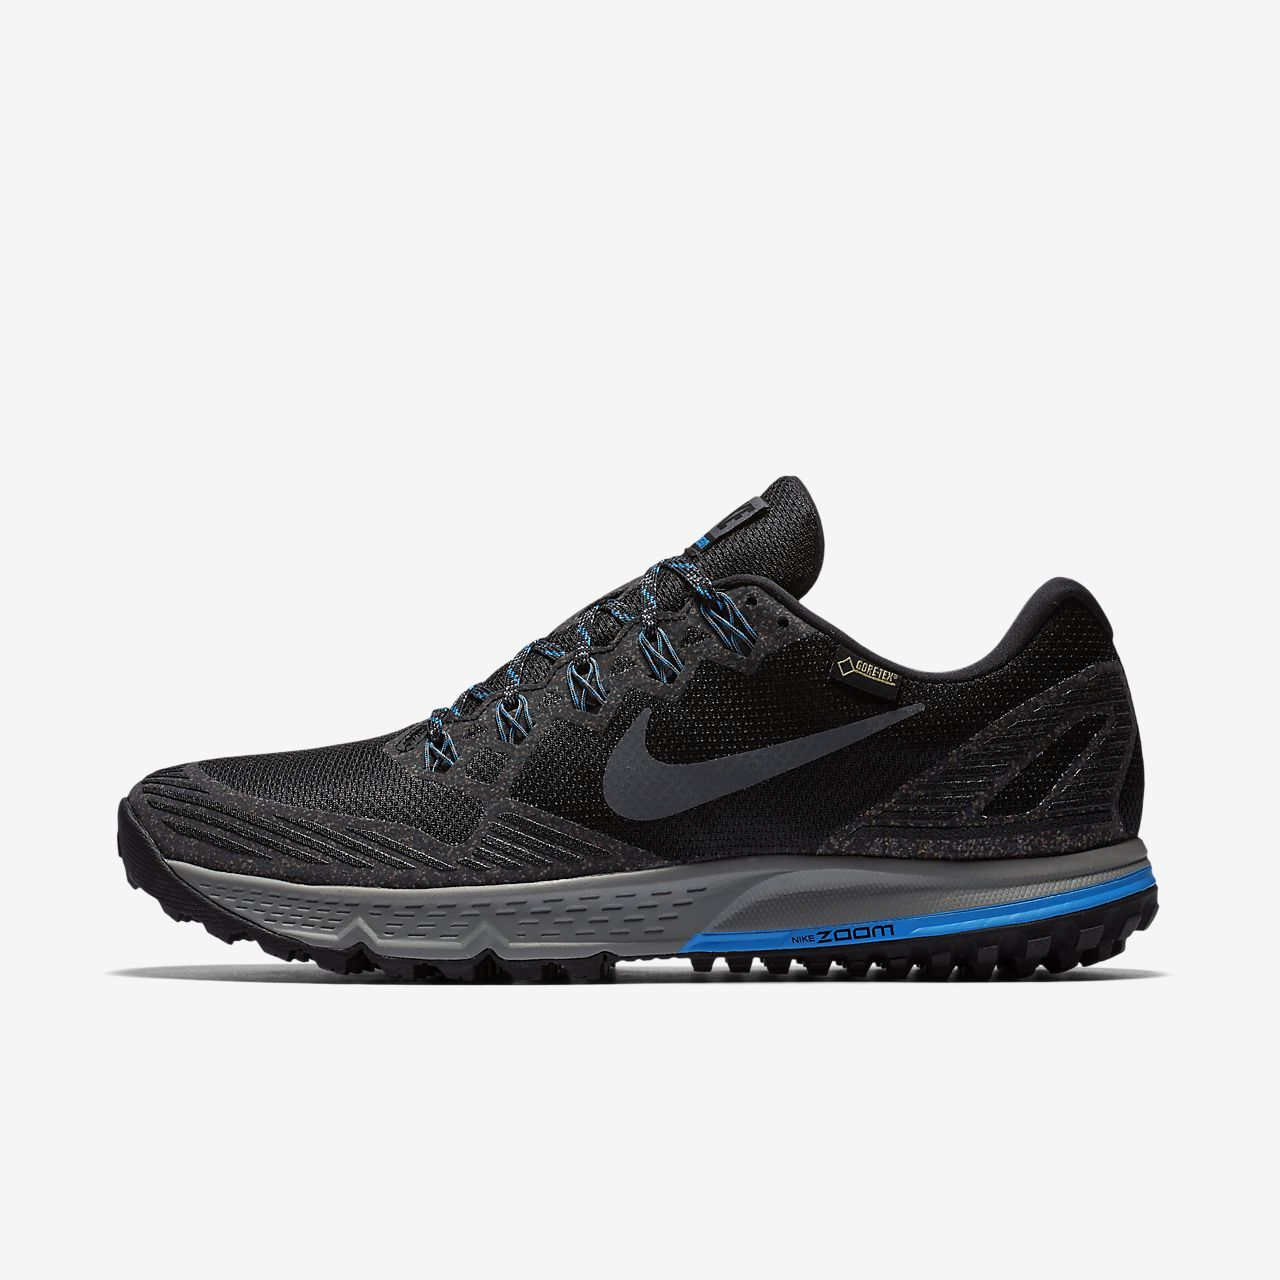 Nike Air Zoom Wildhorse 3 Gore-Tex Men's Running Shoe